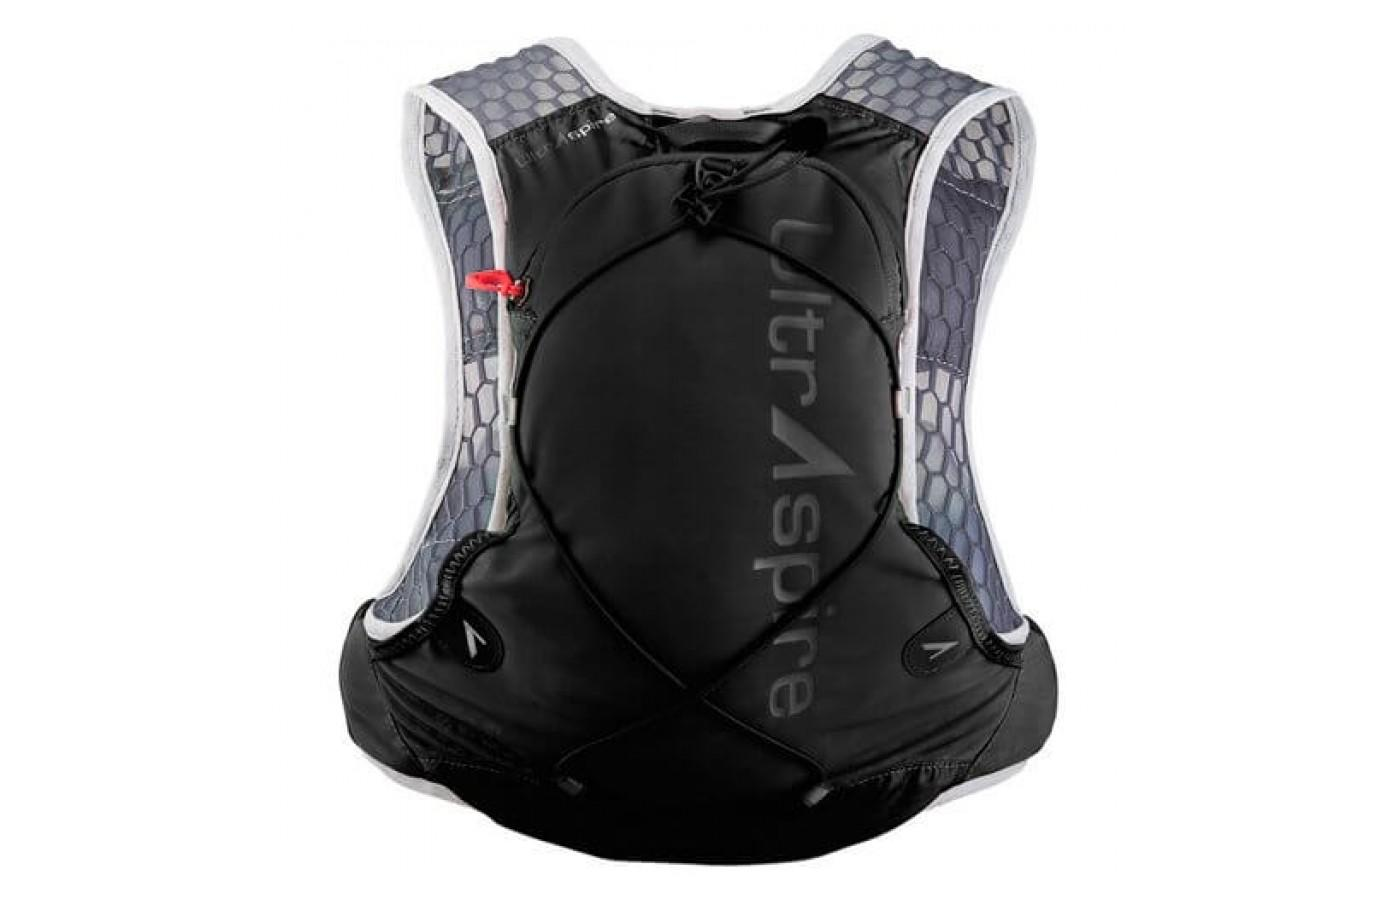 The UltrAspire Alpha 3.0 Vest's rear pouch can store a 2 liter water reservoir easily.